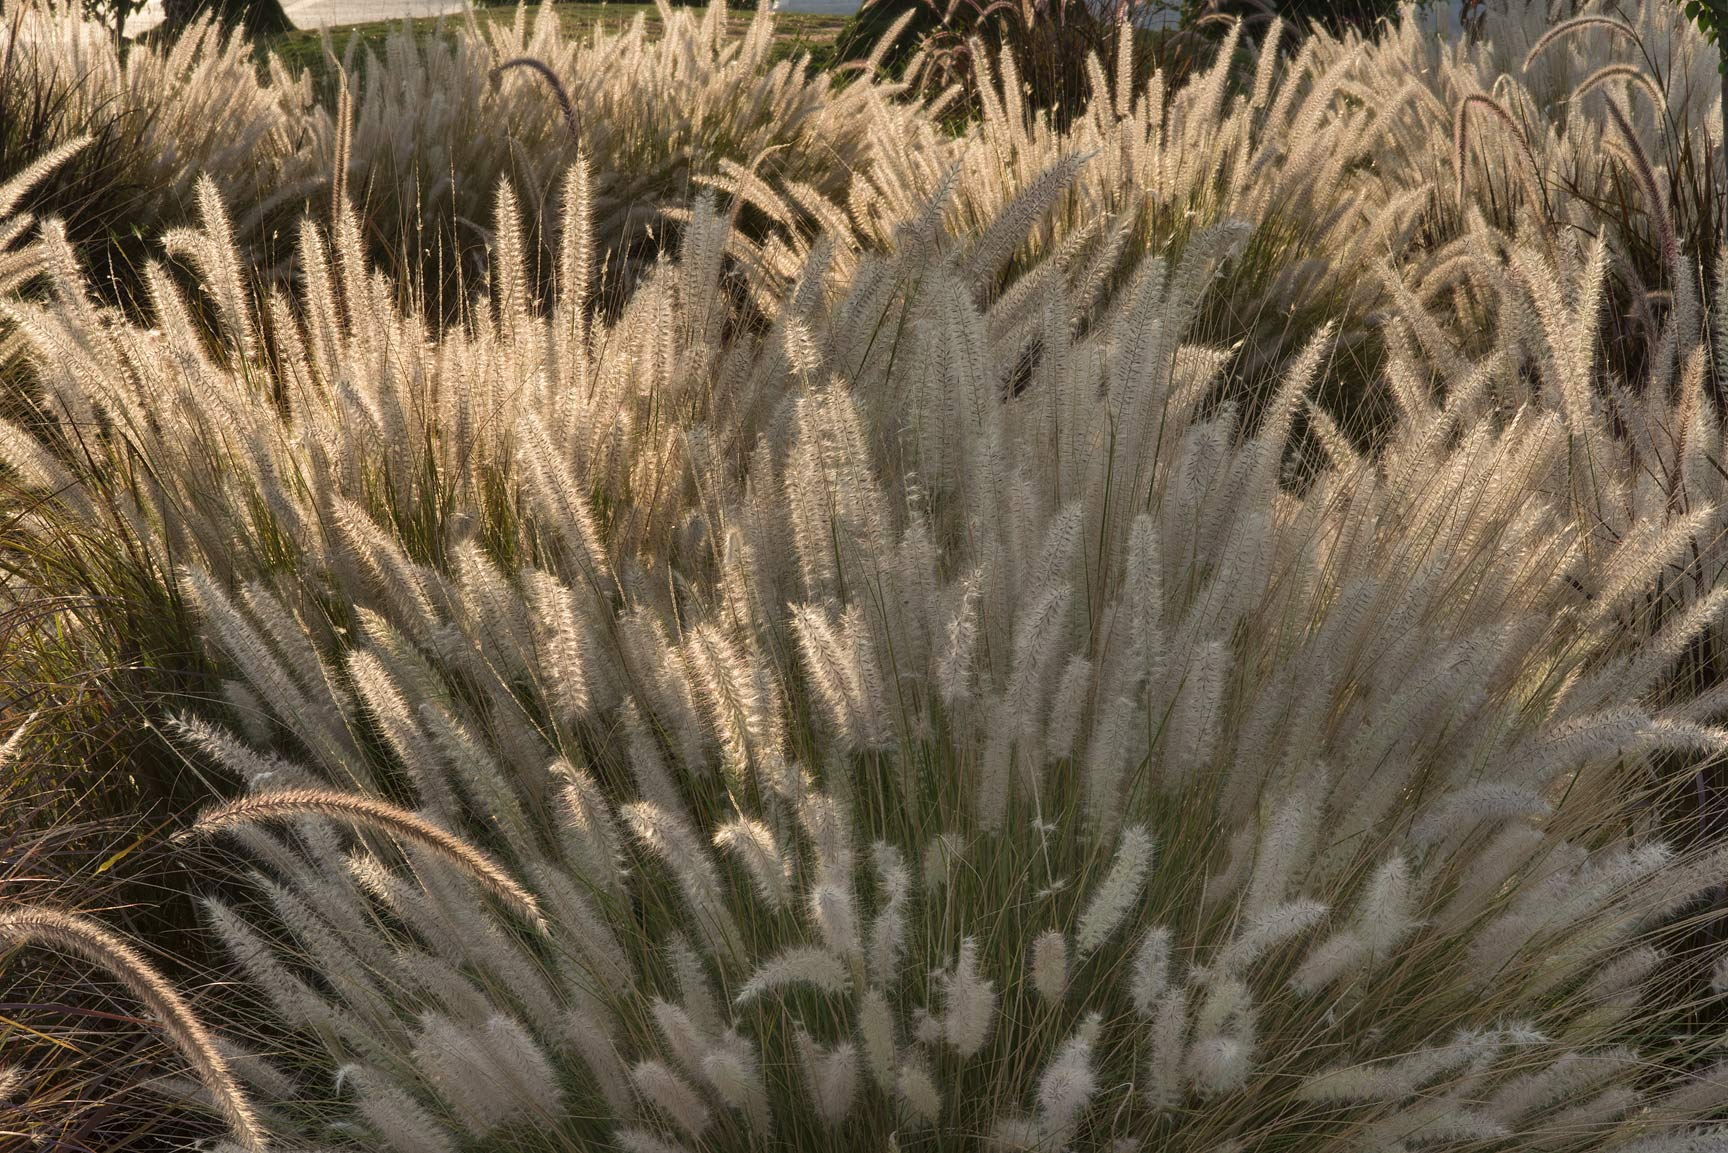 Spikes of fountain grass (Pennisetum setaceum...near a corner with Onaiza. Doha, Qatar